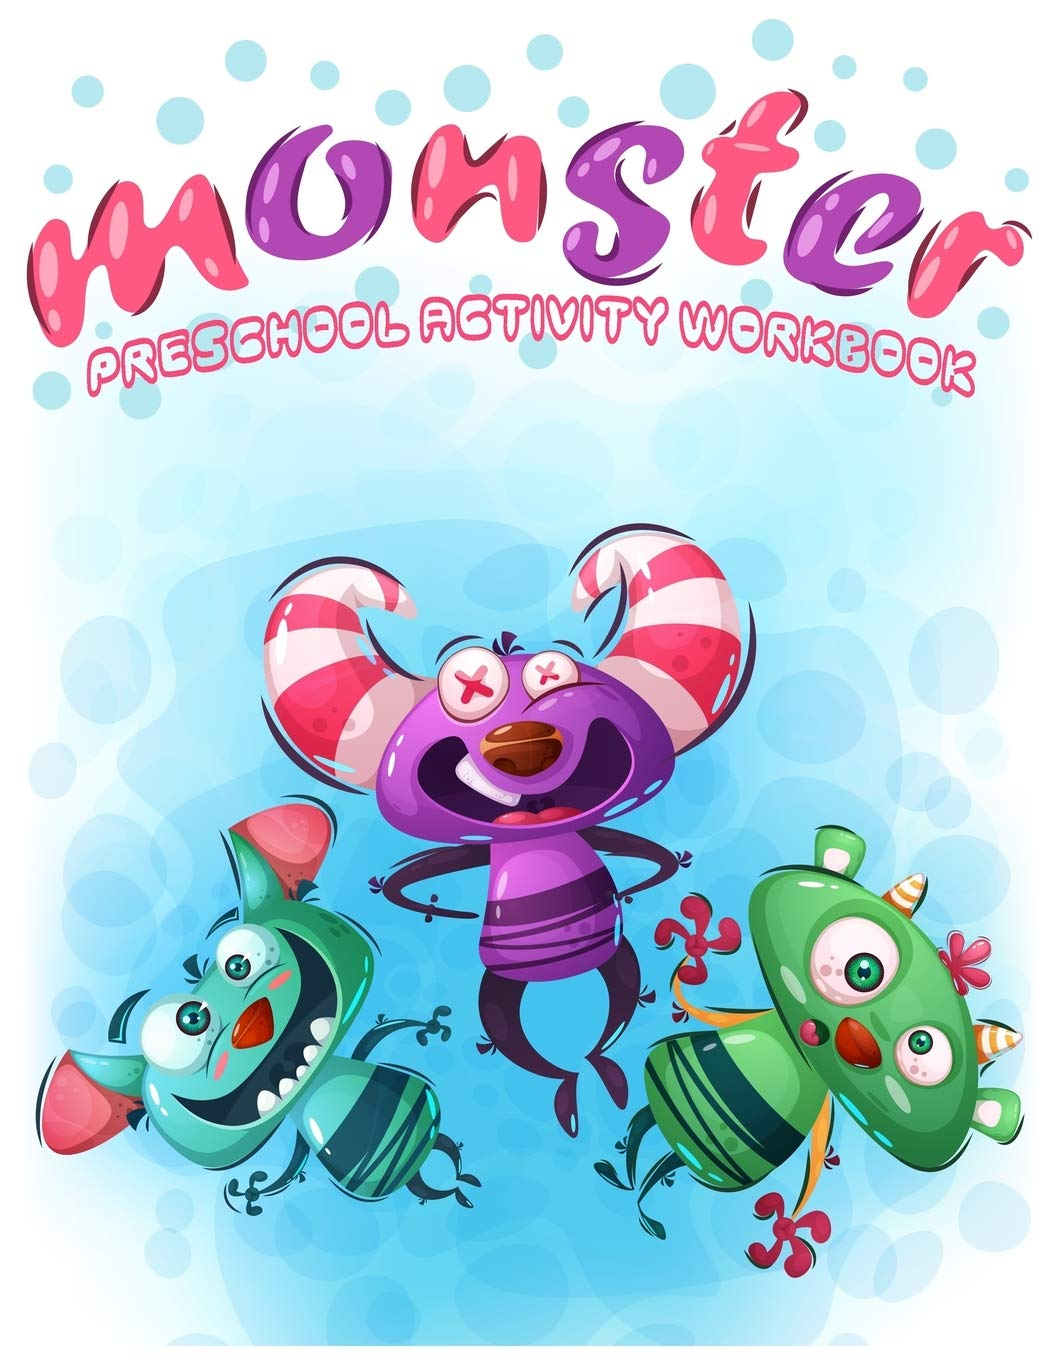 Monsters Preschool Activity Workbook Fun Games And Activities To Support Toddlers Kindergarten Pre K To First Grade Math Skills And Number Writing Practice Books Zazi 9781671326651 Amazon Com Books